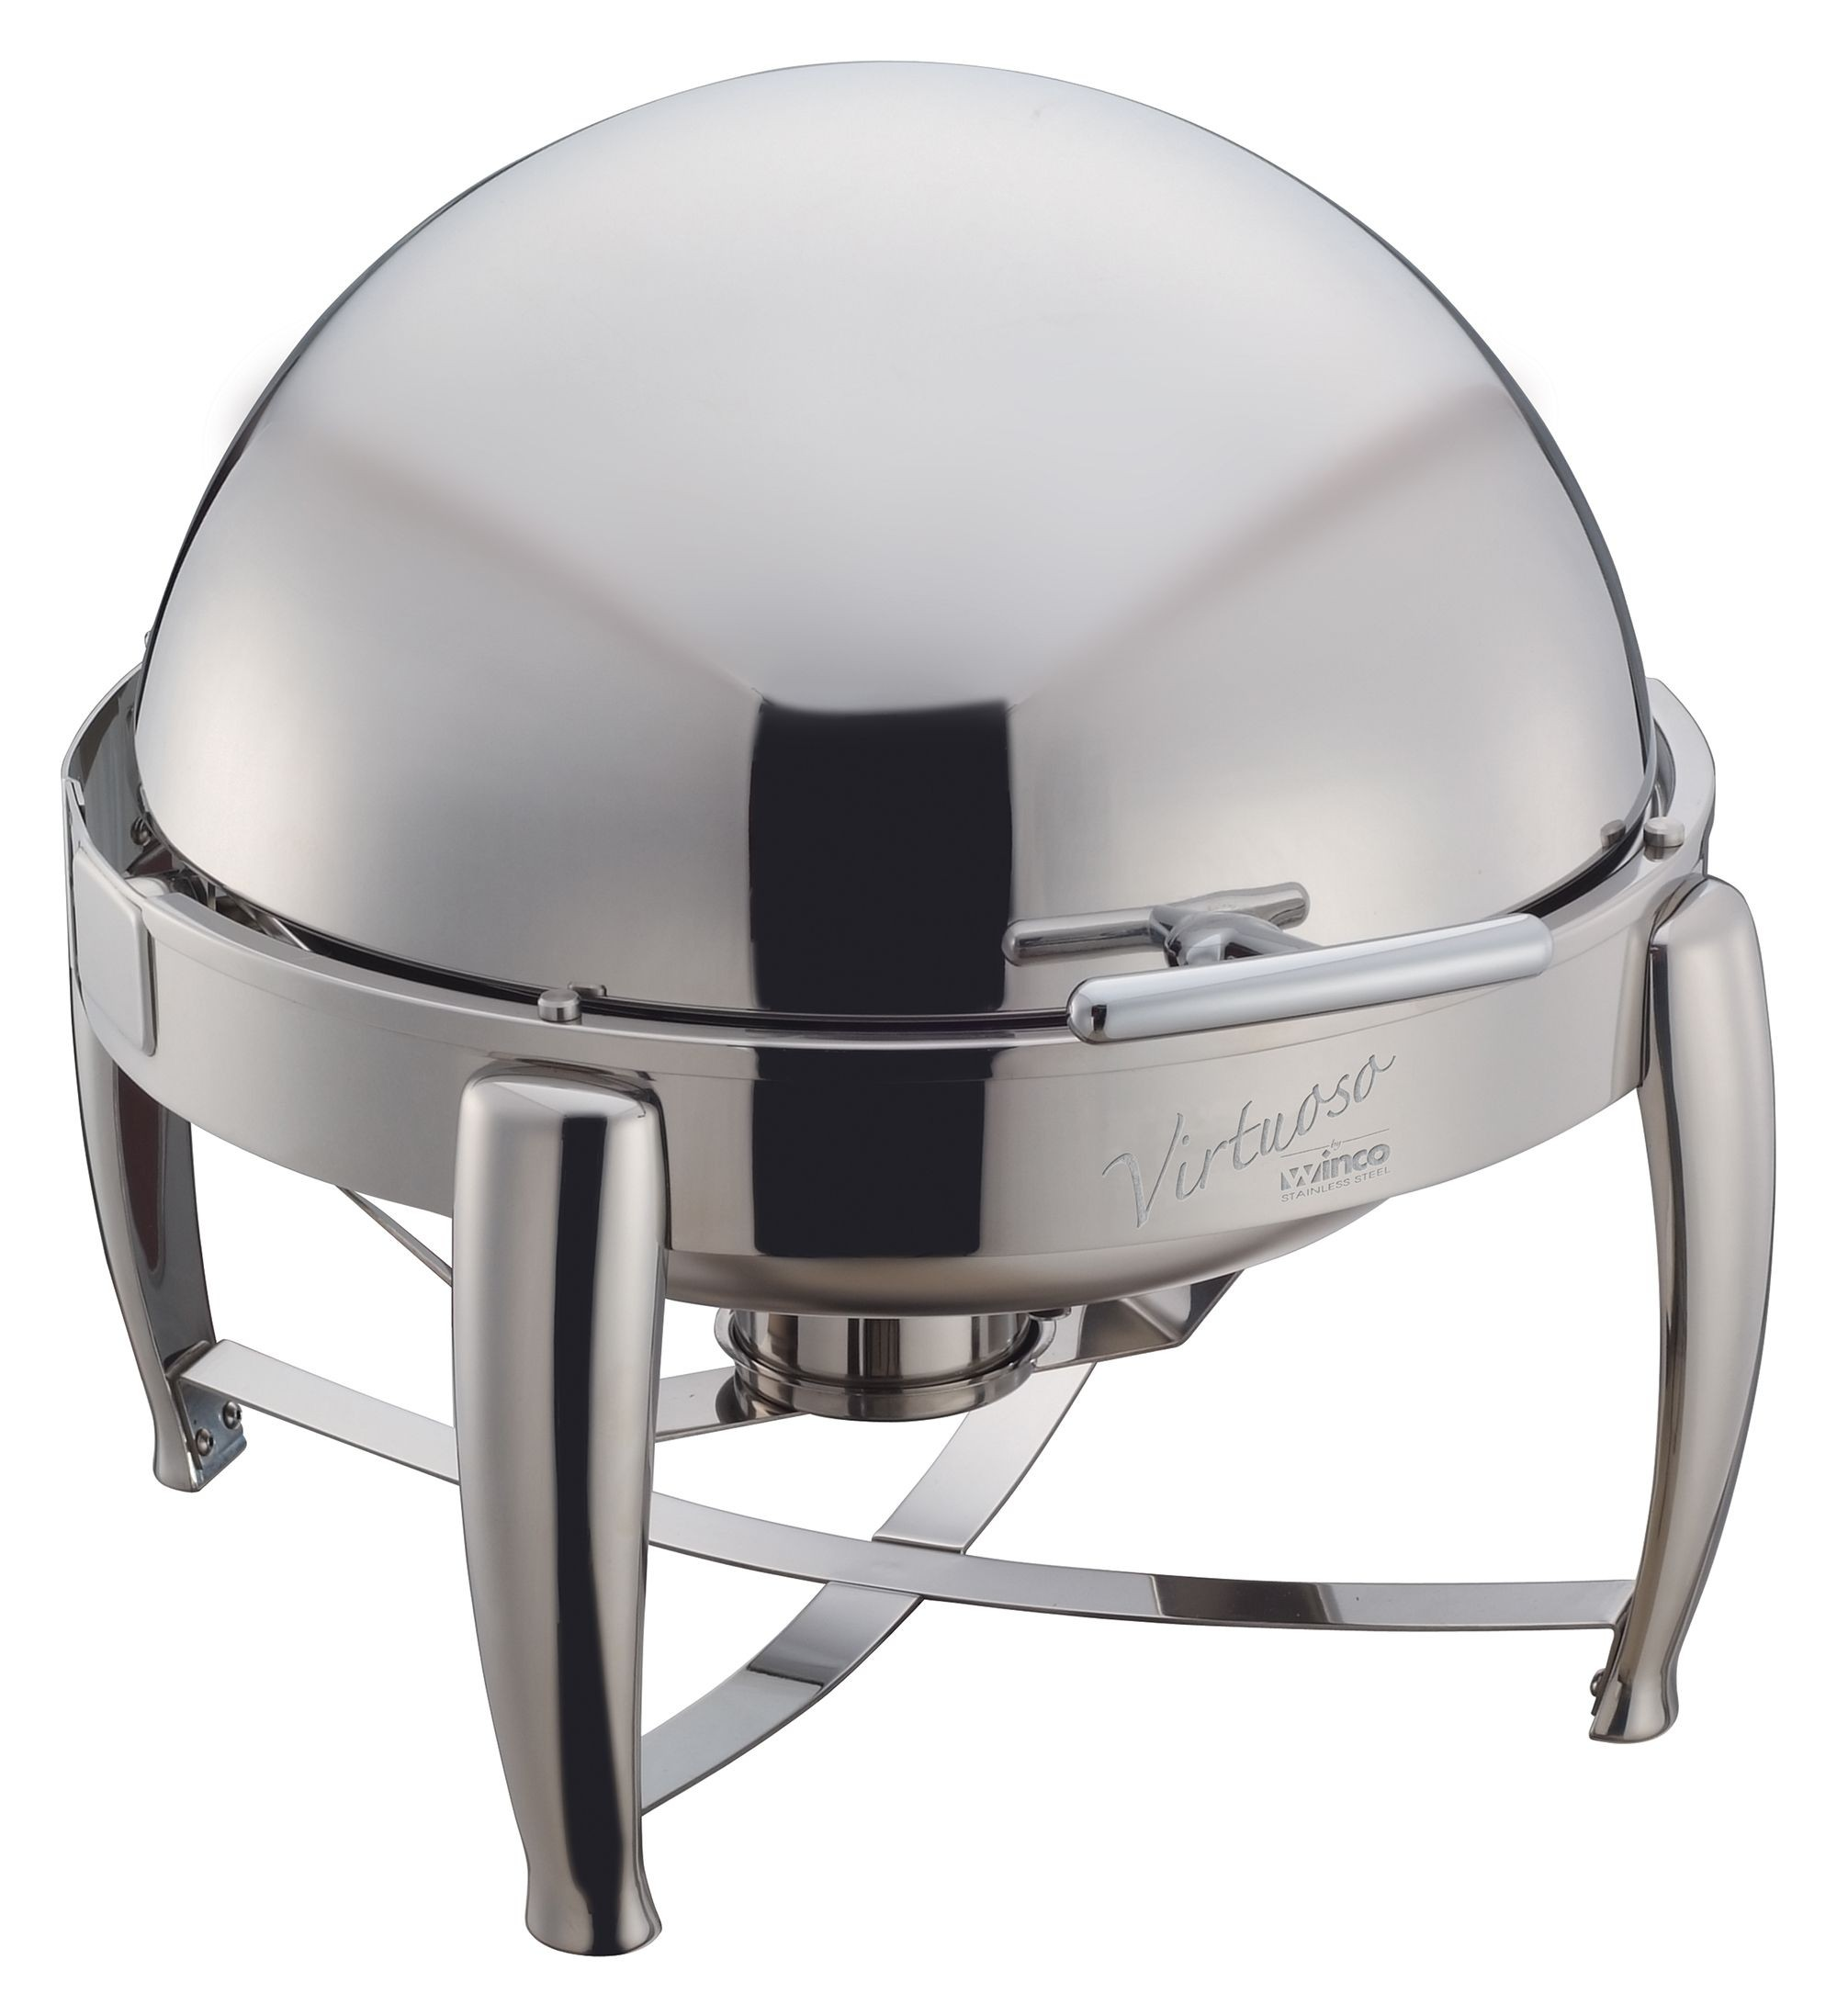 Virtuoso Stainless Steel Round Roll Top Chafer 6 Qt